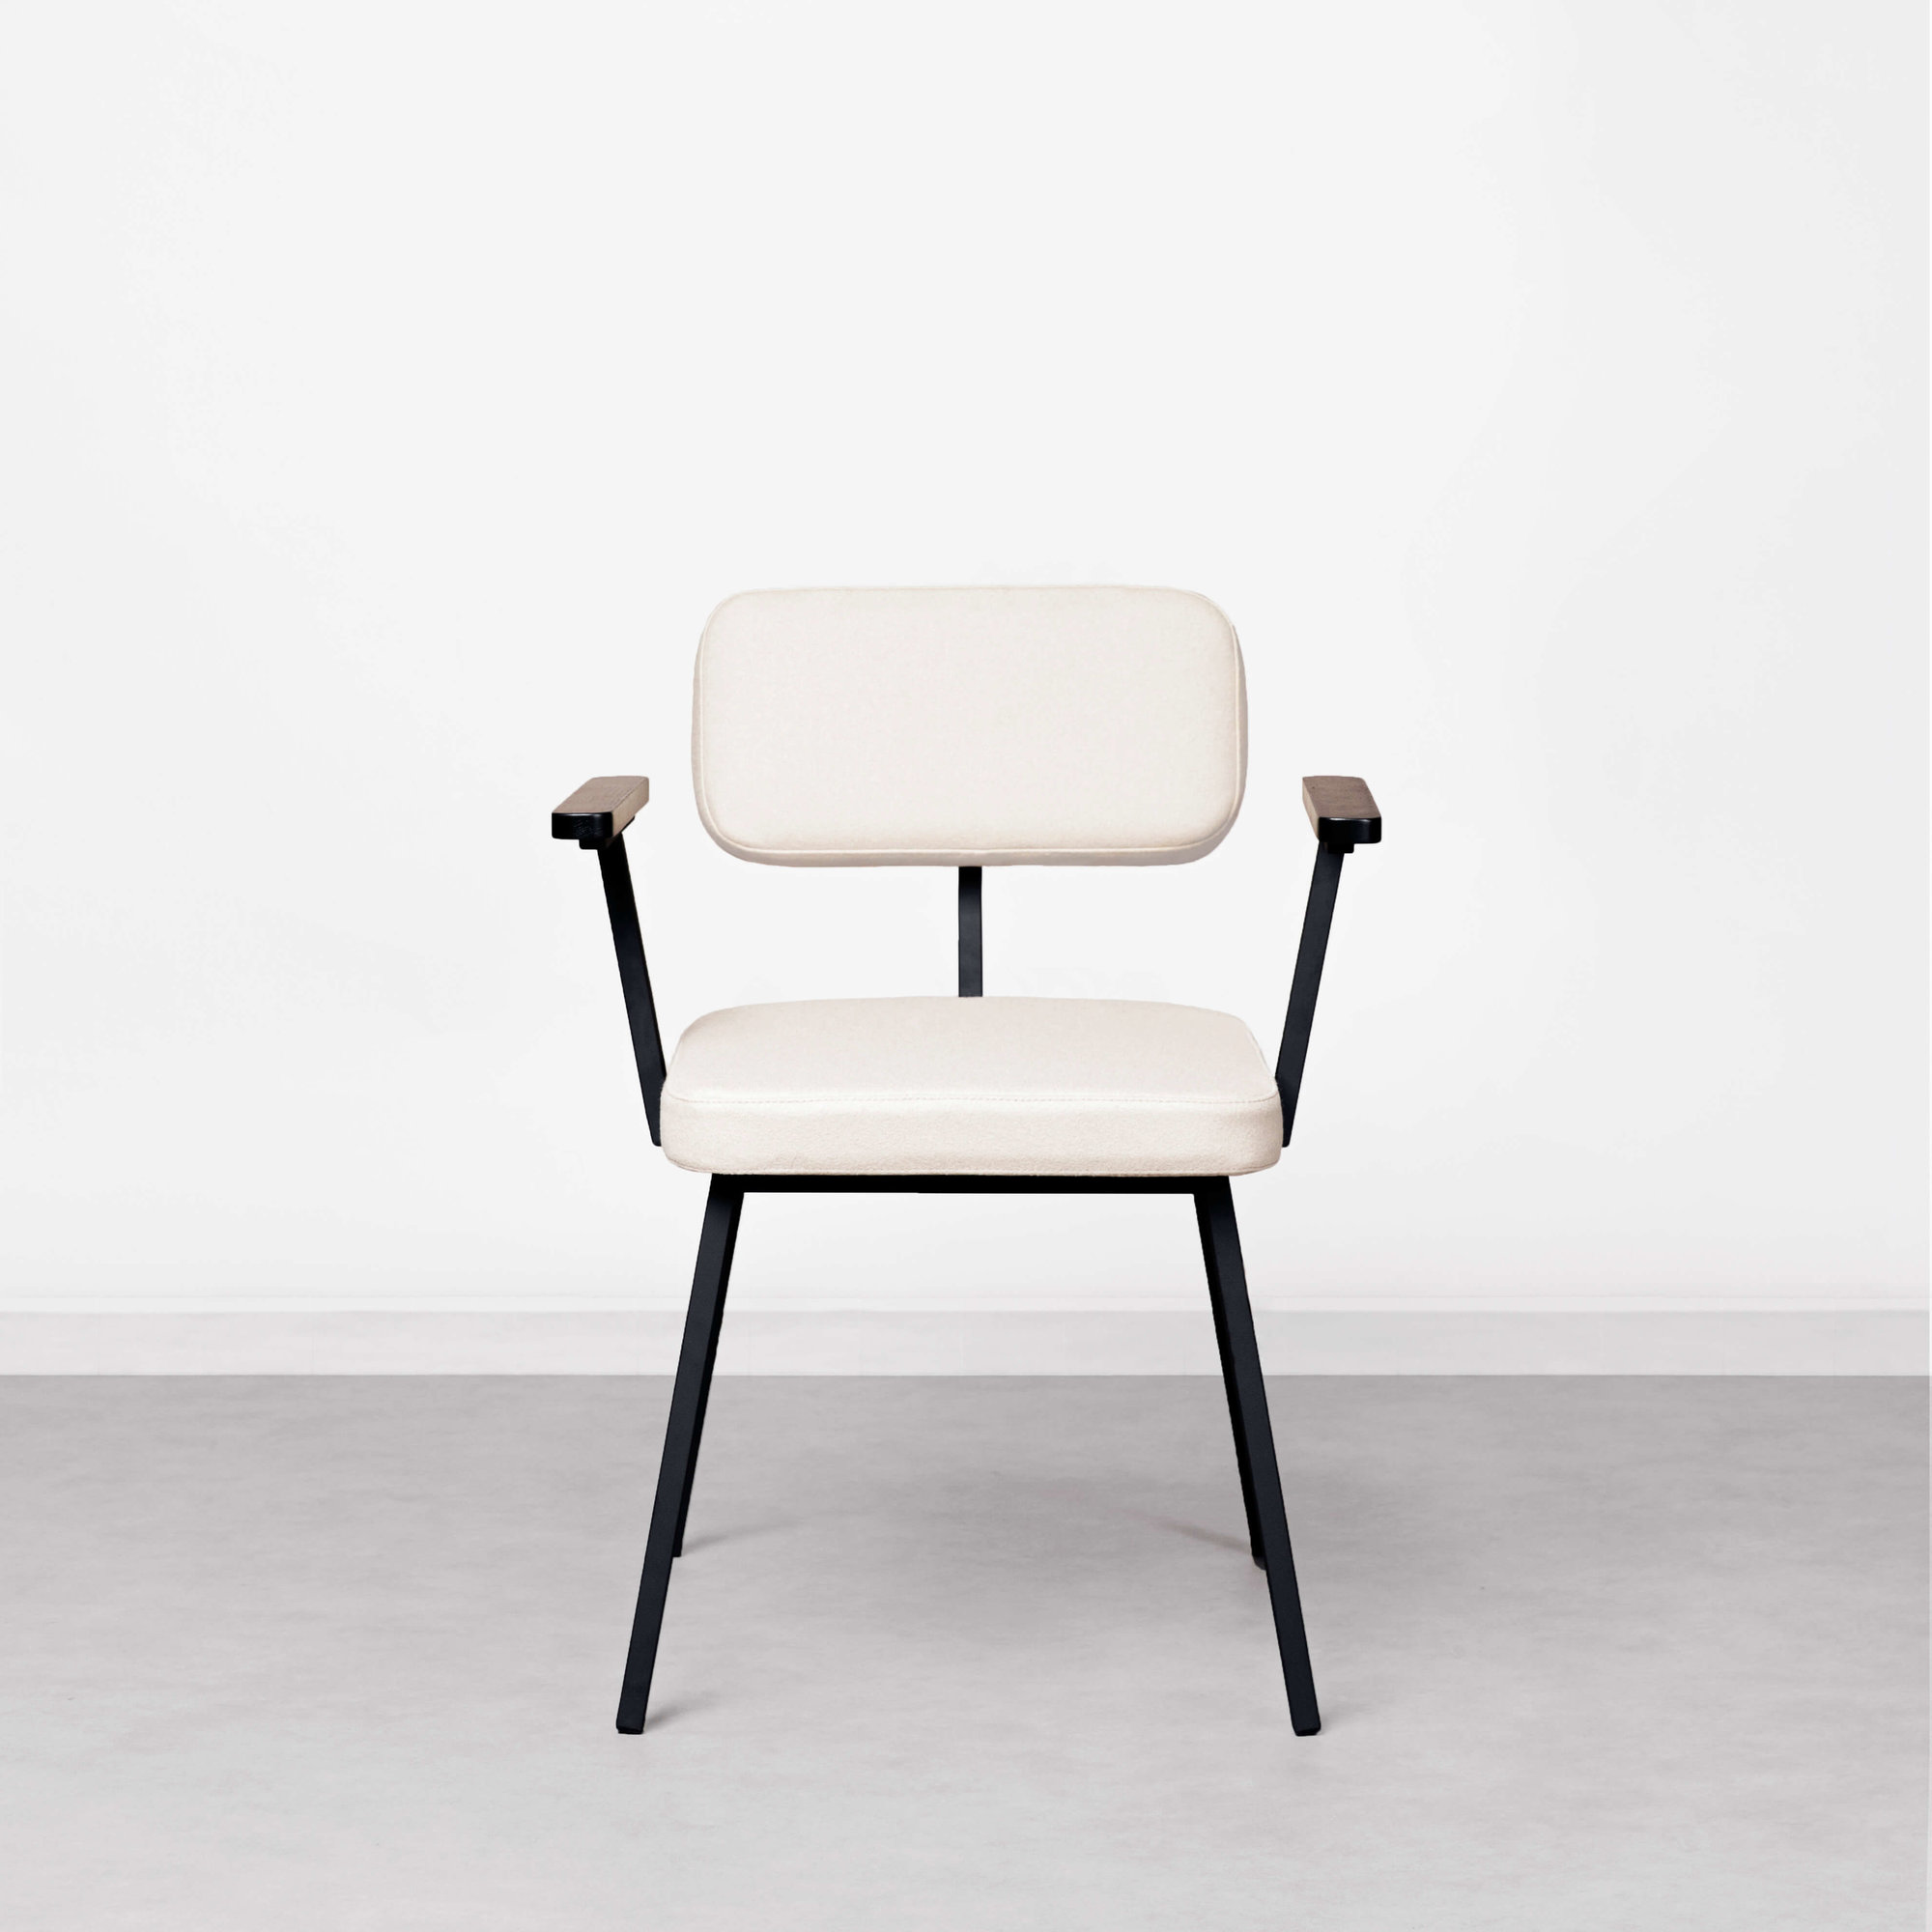 Design eetkamerstoel | Ode Chair with armrest juke pink73 | Studio HENK |